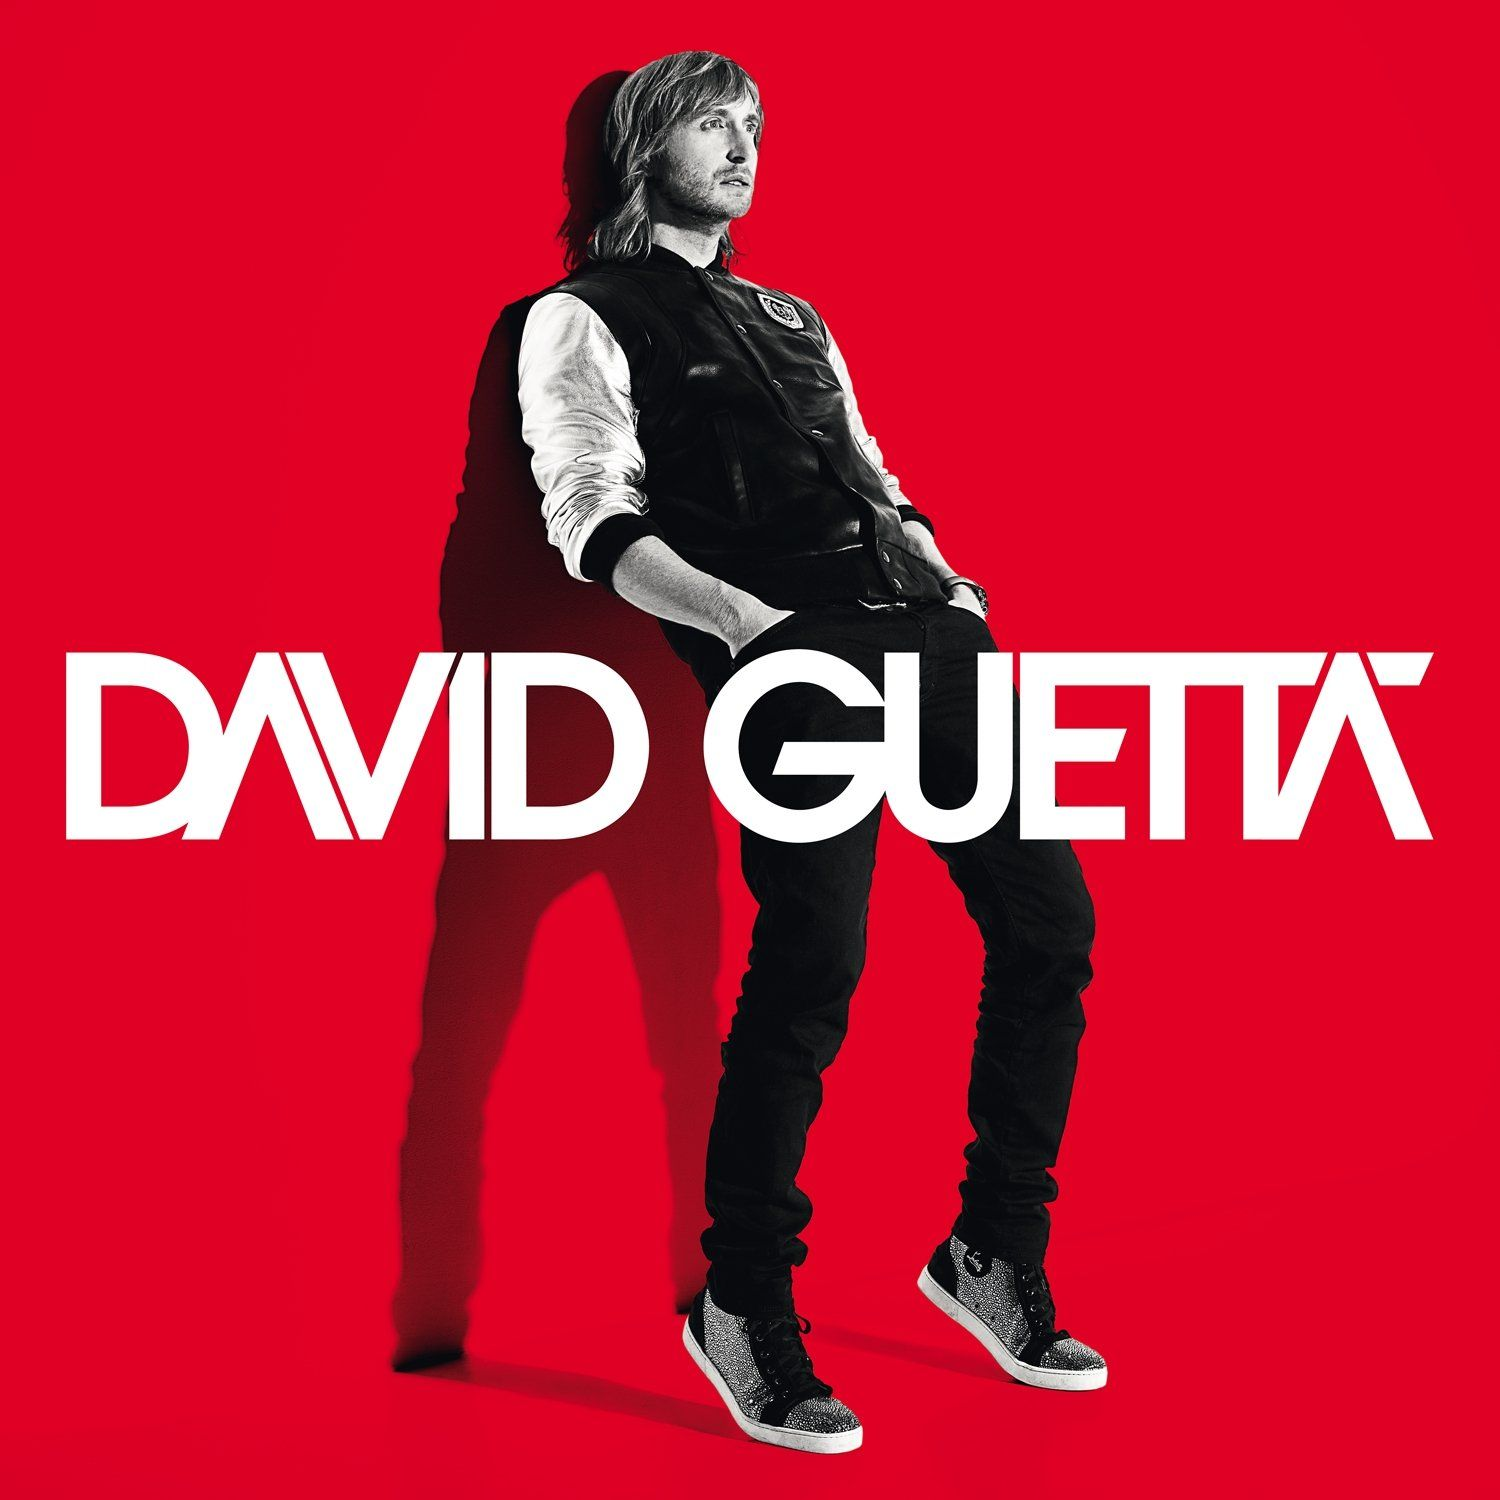 David Guetta House Edm Electro Electronic Disc Jockey Electropop